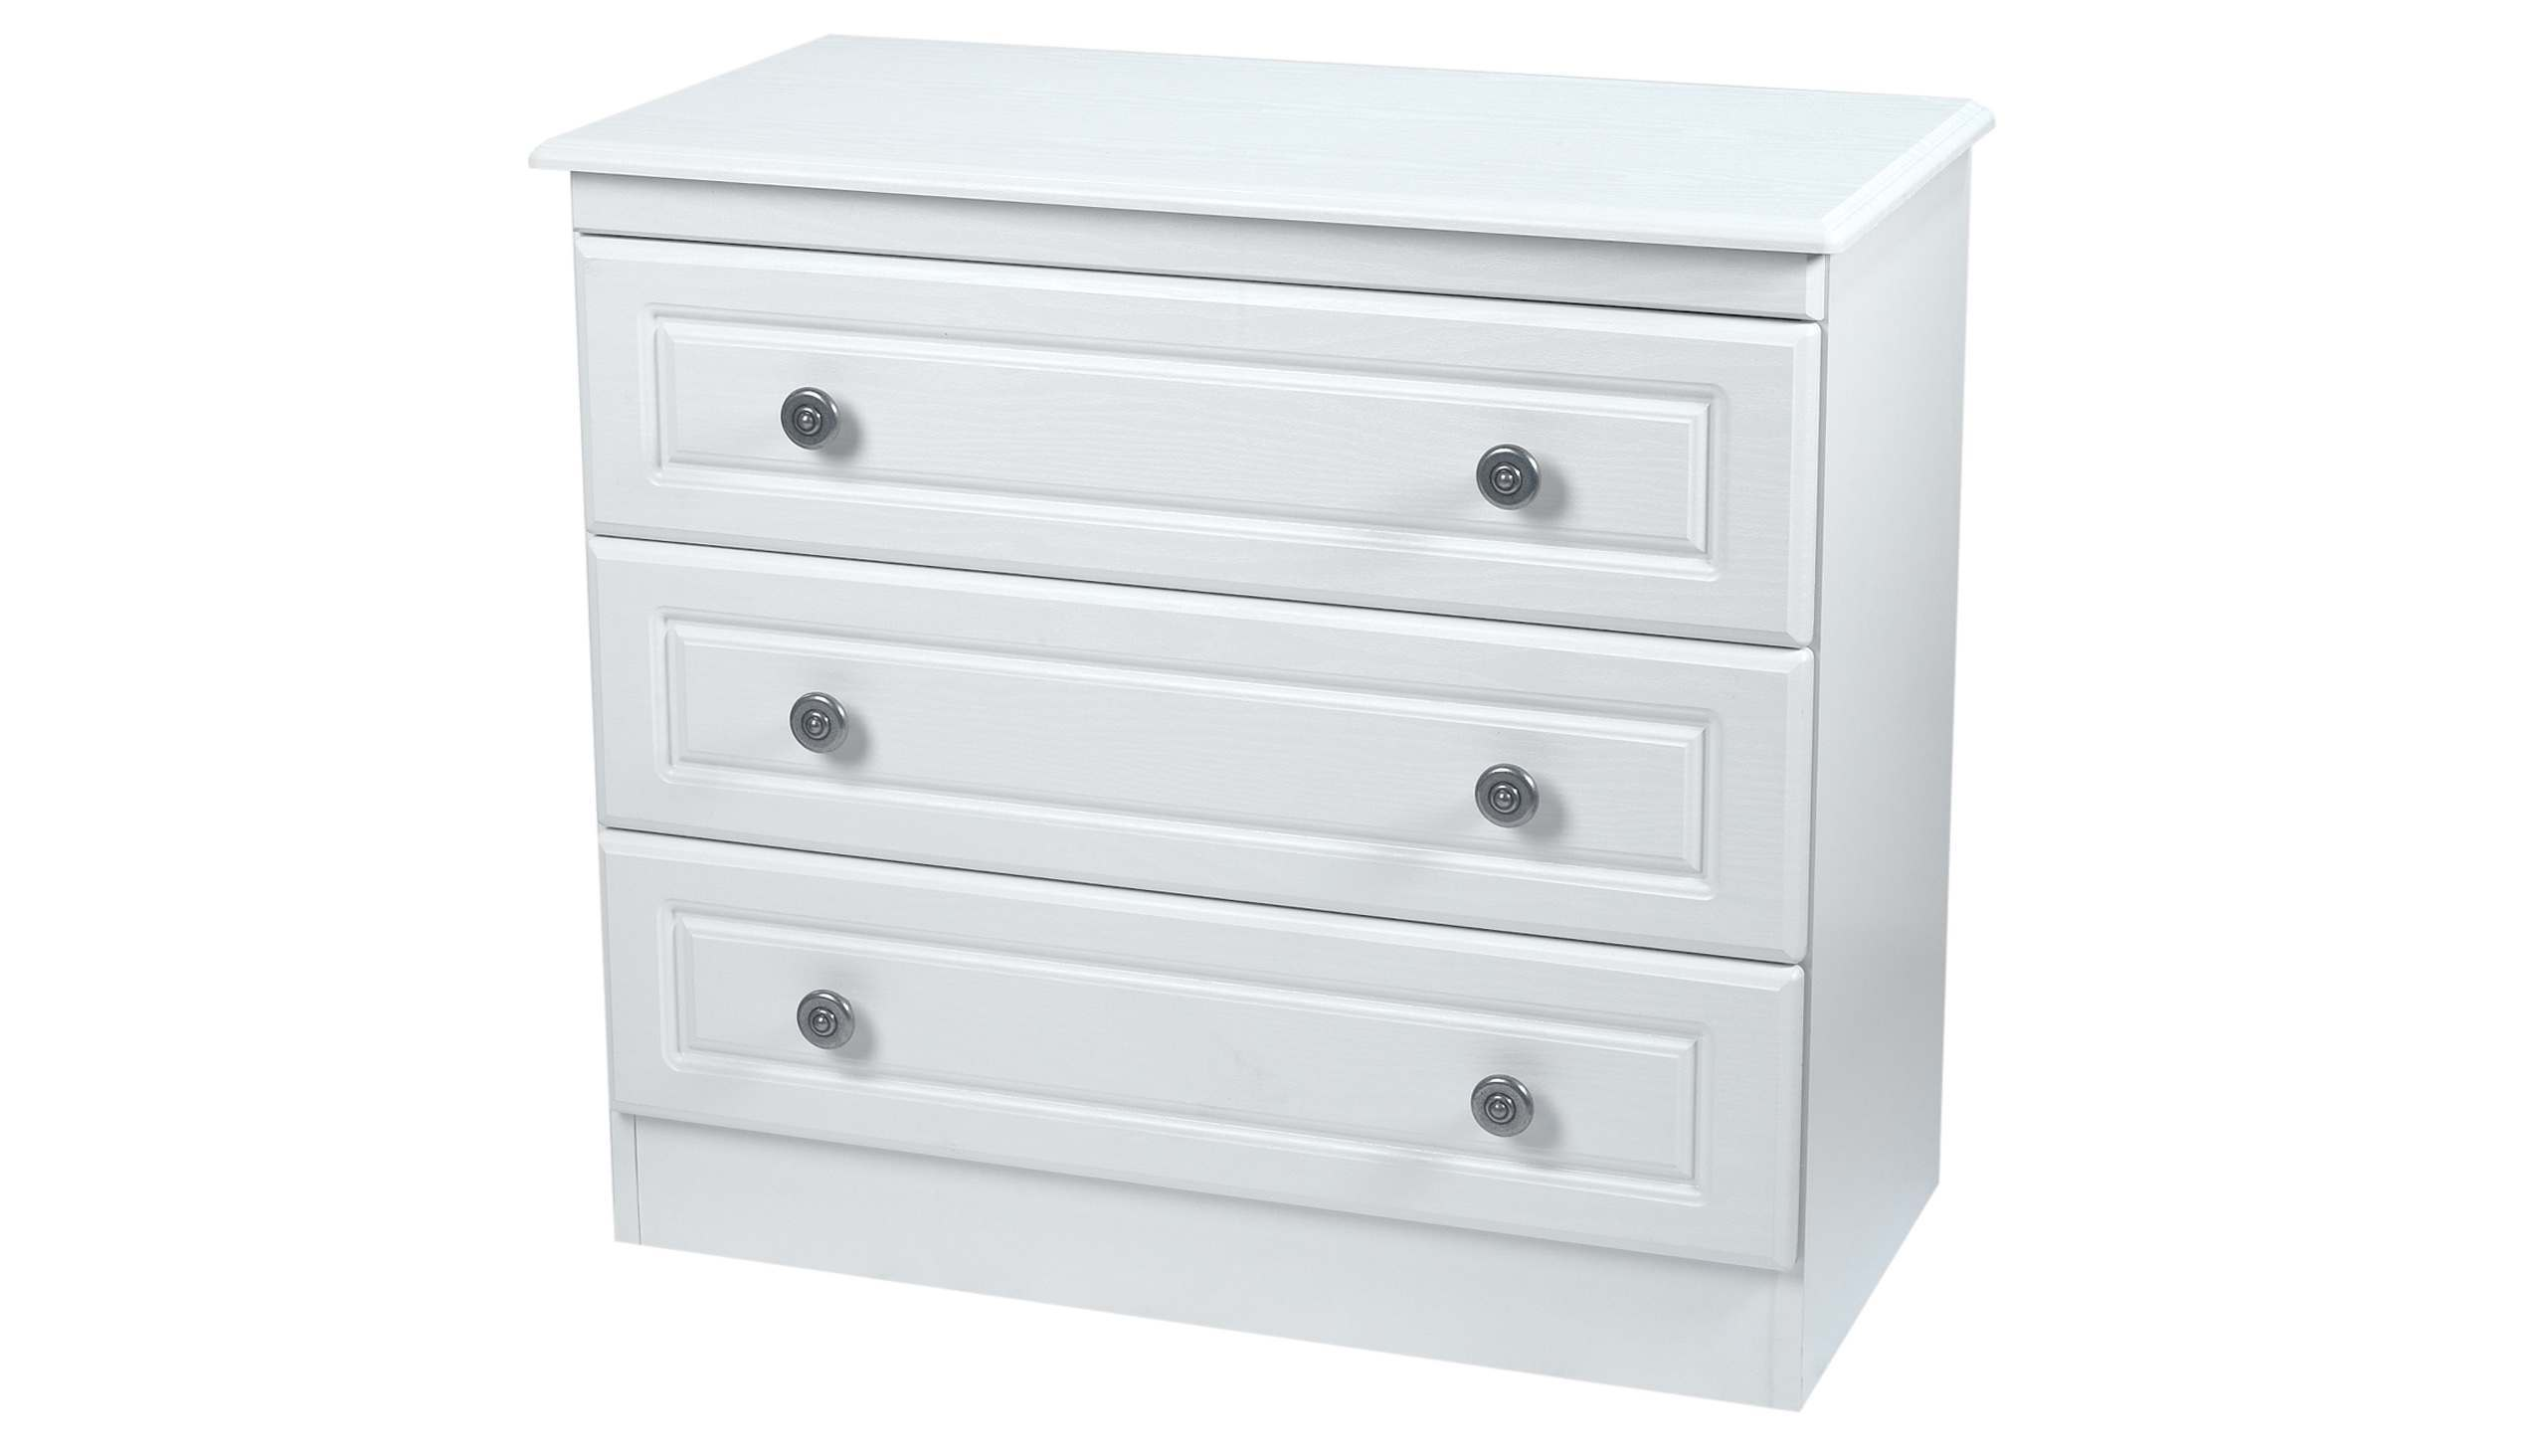 Pembroke 3 drawer chest - AHF Furniture & Carpets